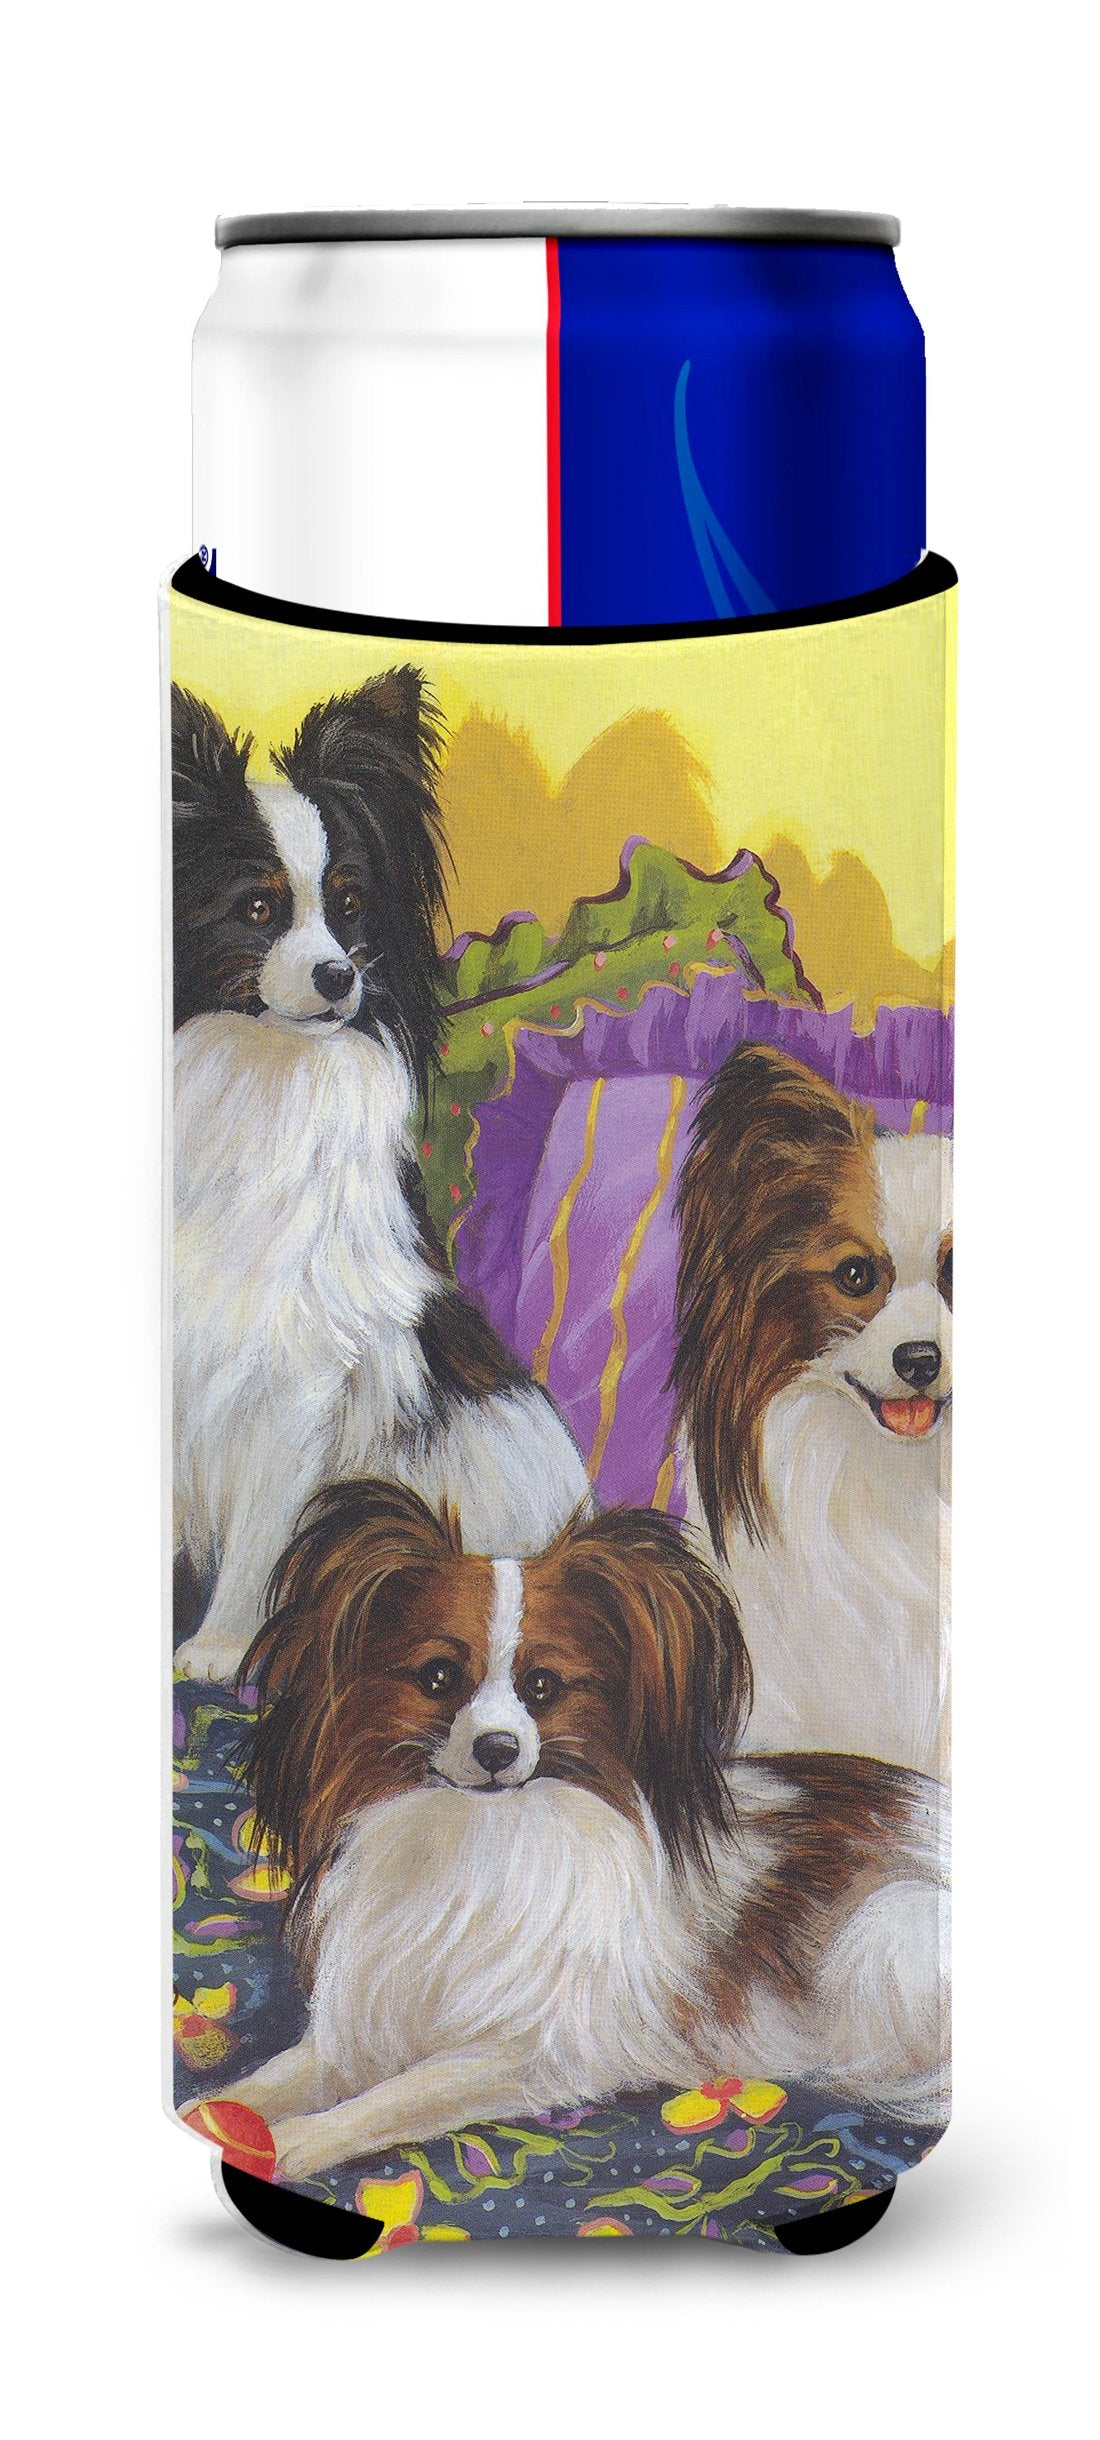 Papillon Party Pals Ultra Hugger for slim cans PPP3144MUK by Caroline's Treasures